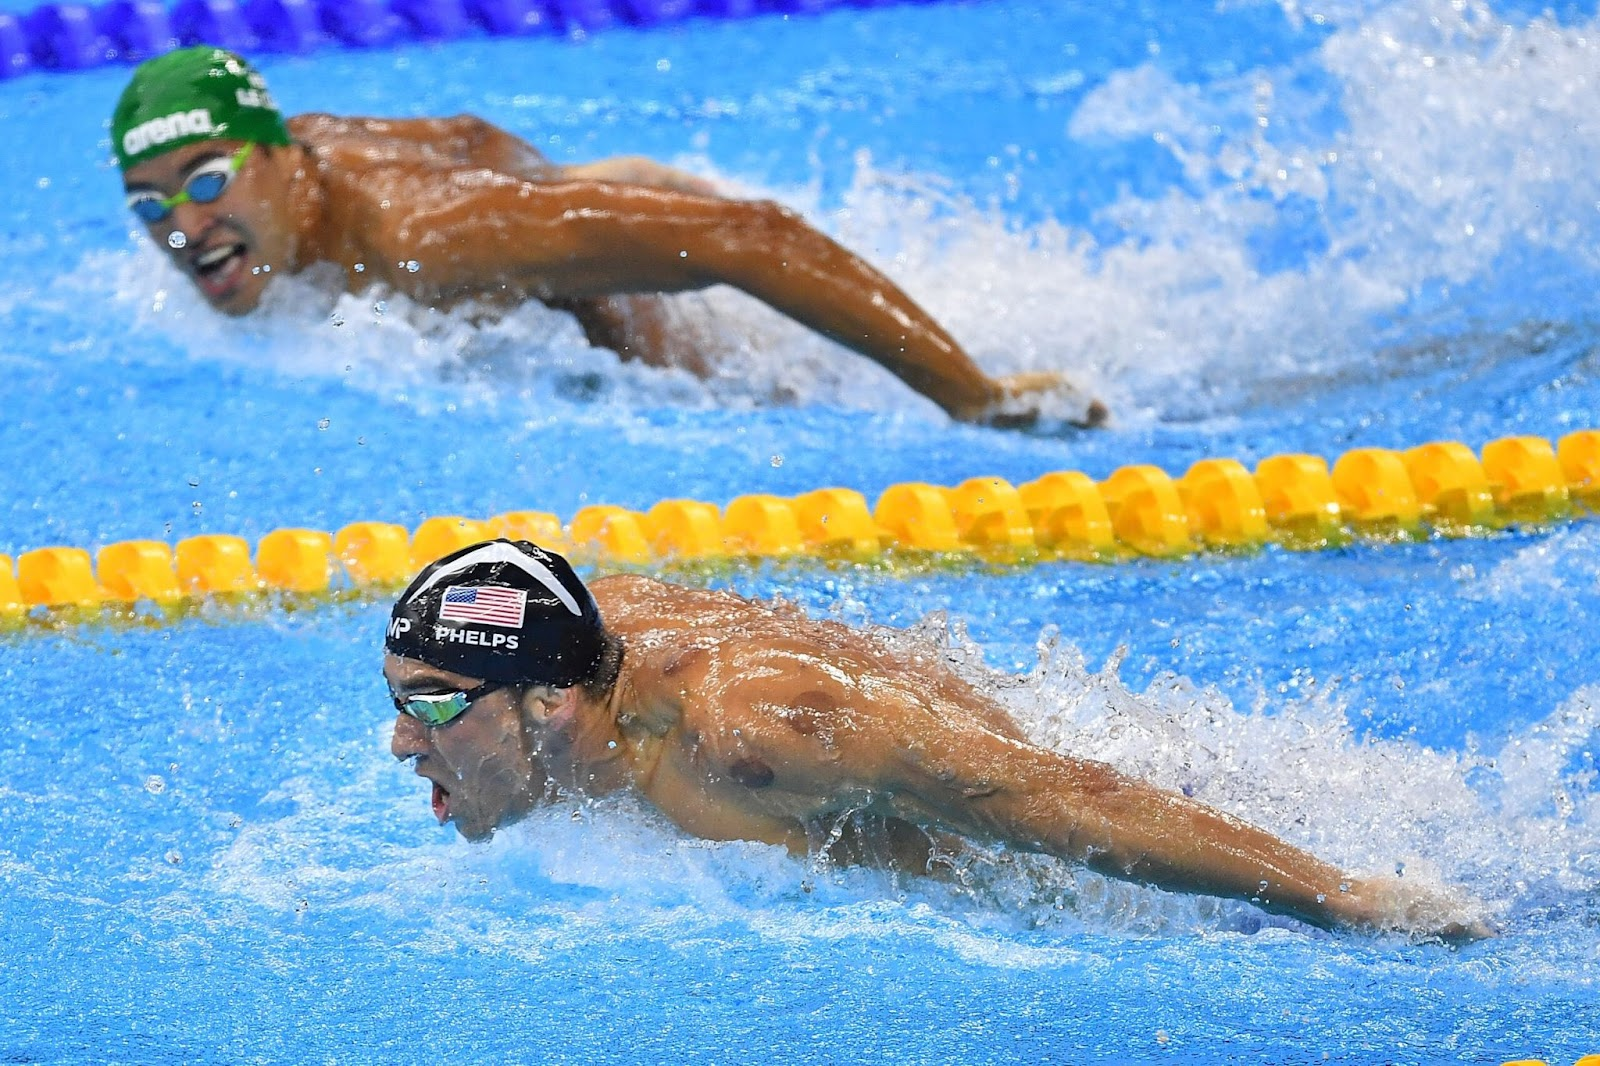 PICTURE OF LE CLOS LOOKING AT PHELPS IN THE OLYMPICS AND THEN MISSING GOLD